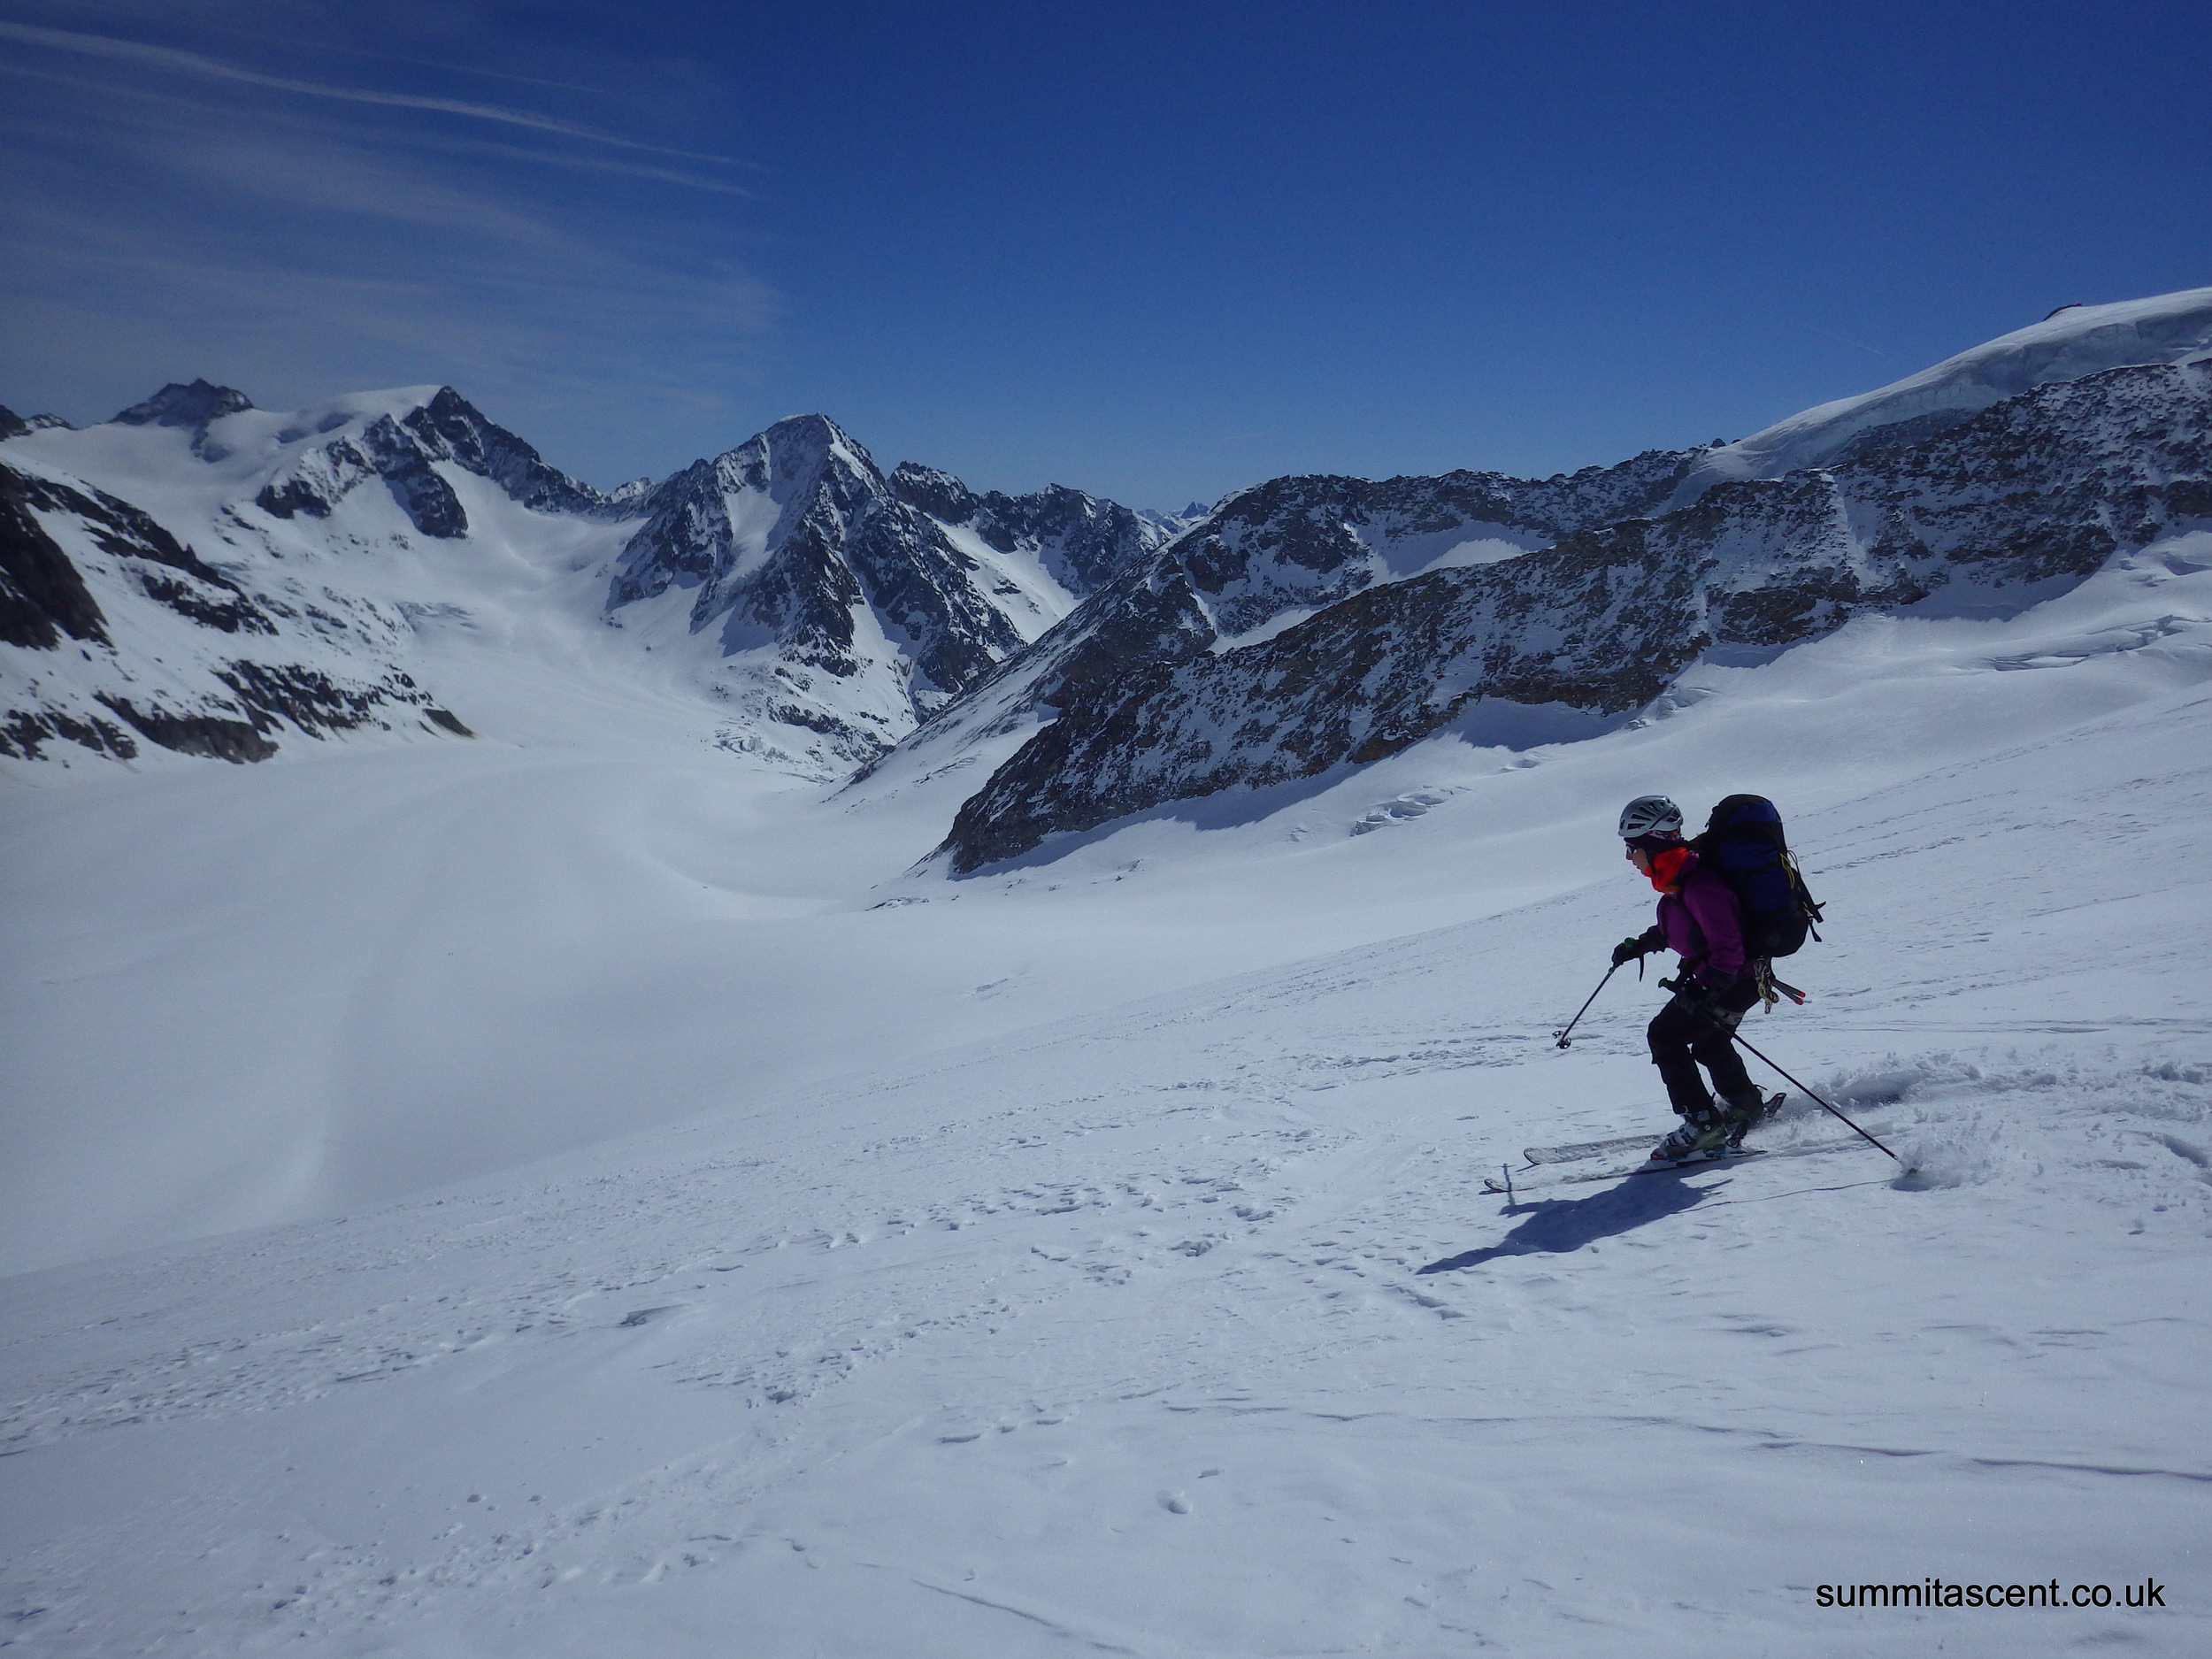 Skiing off the Summit of Wysnollen, Bernese Oberland